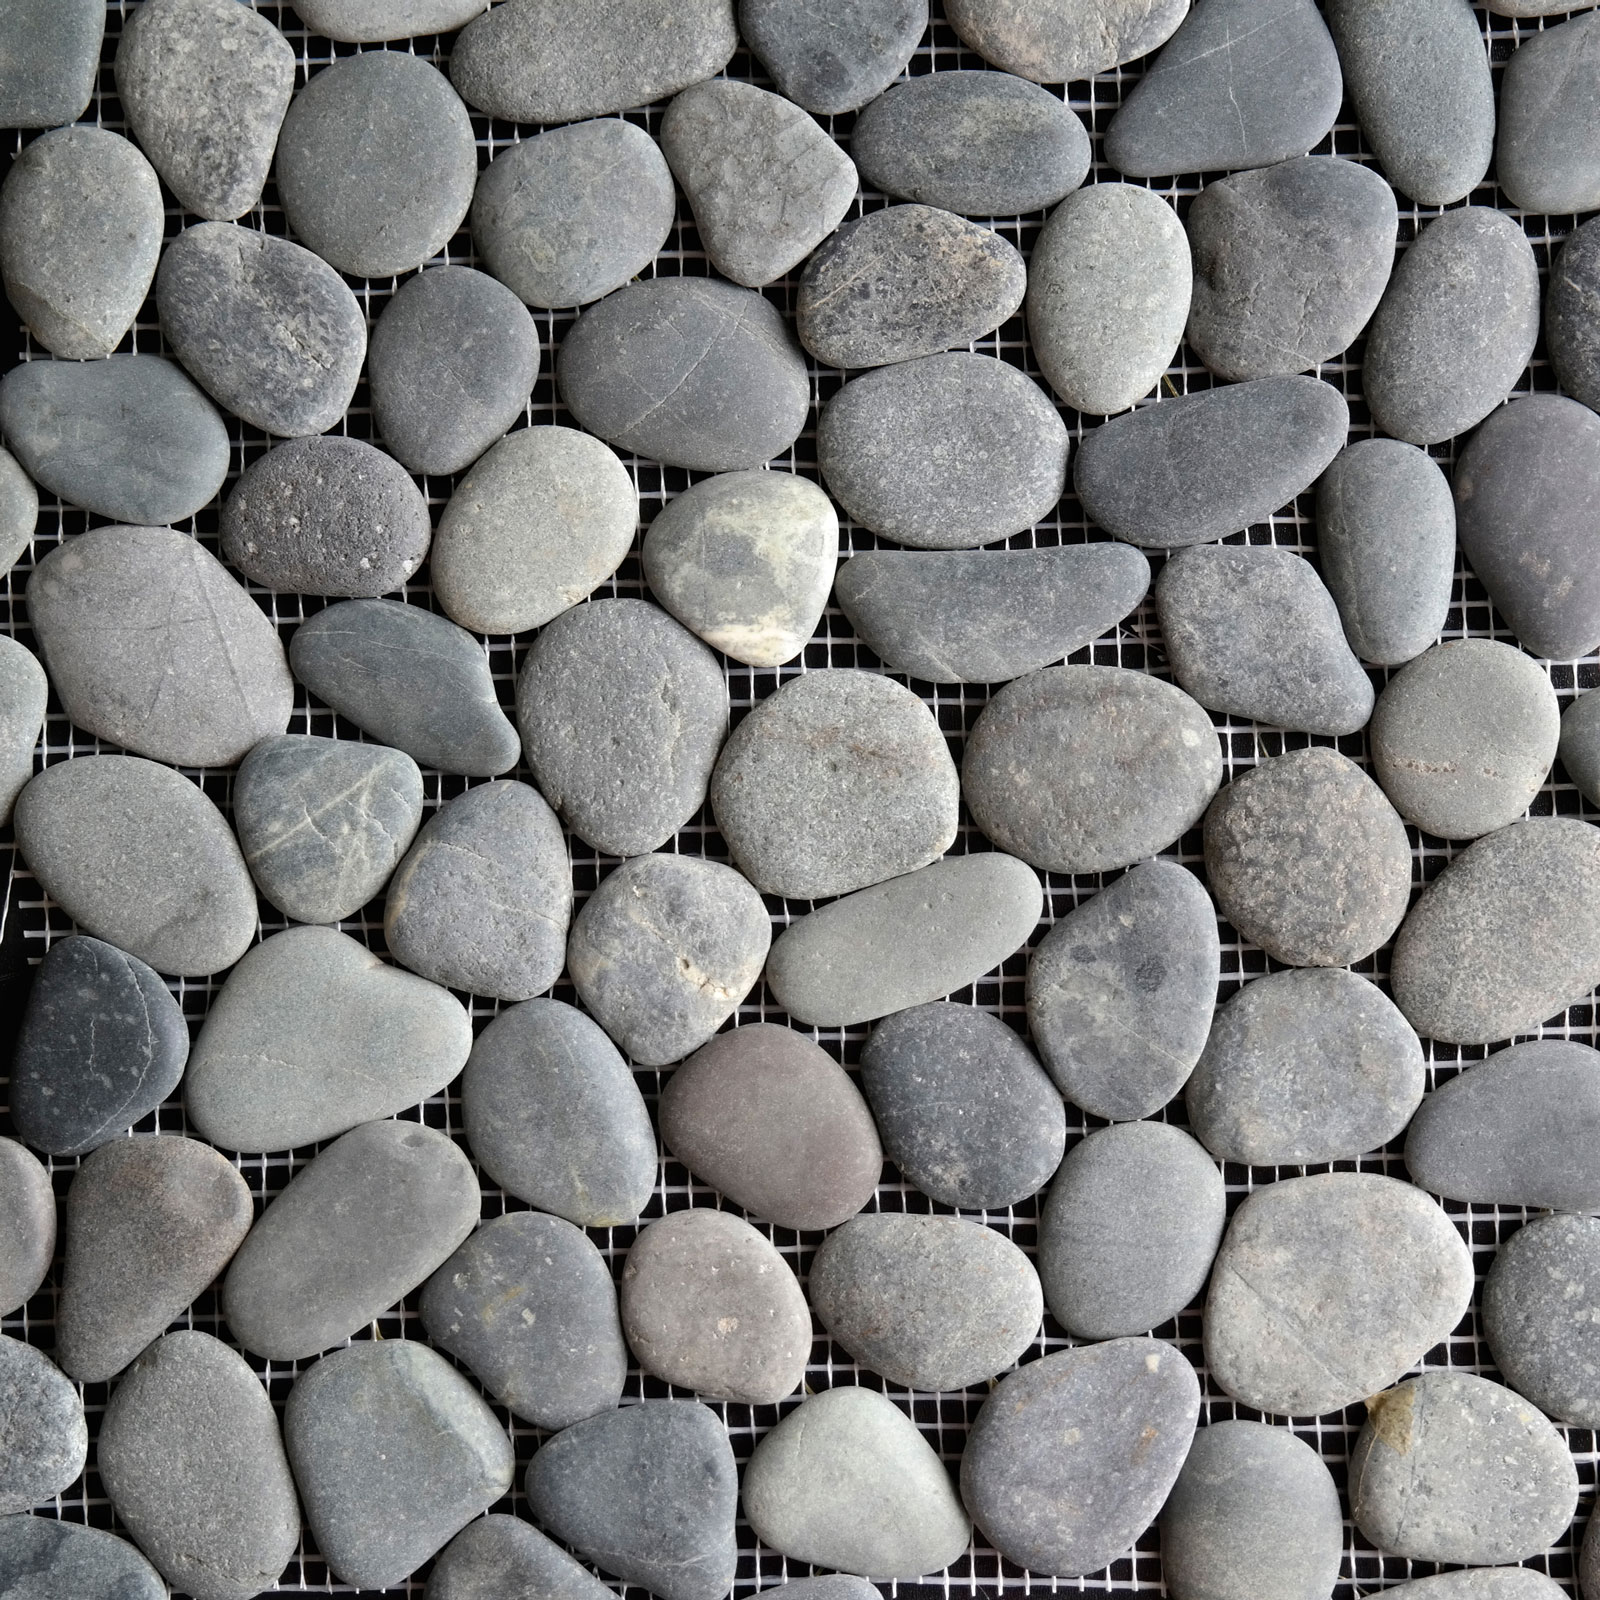 Black Round Stone Pebble Mosaic